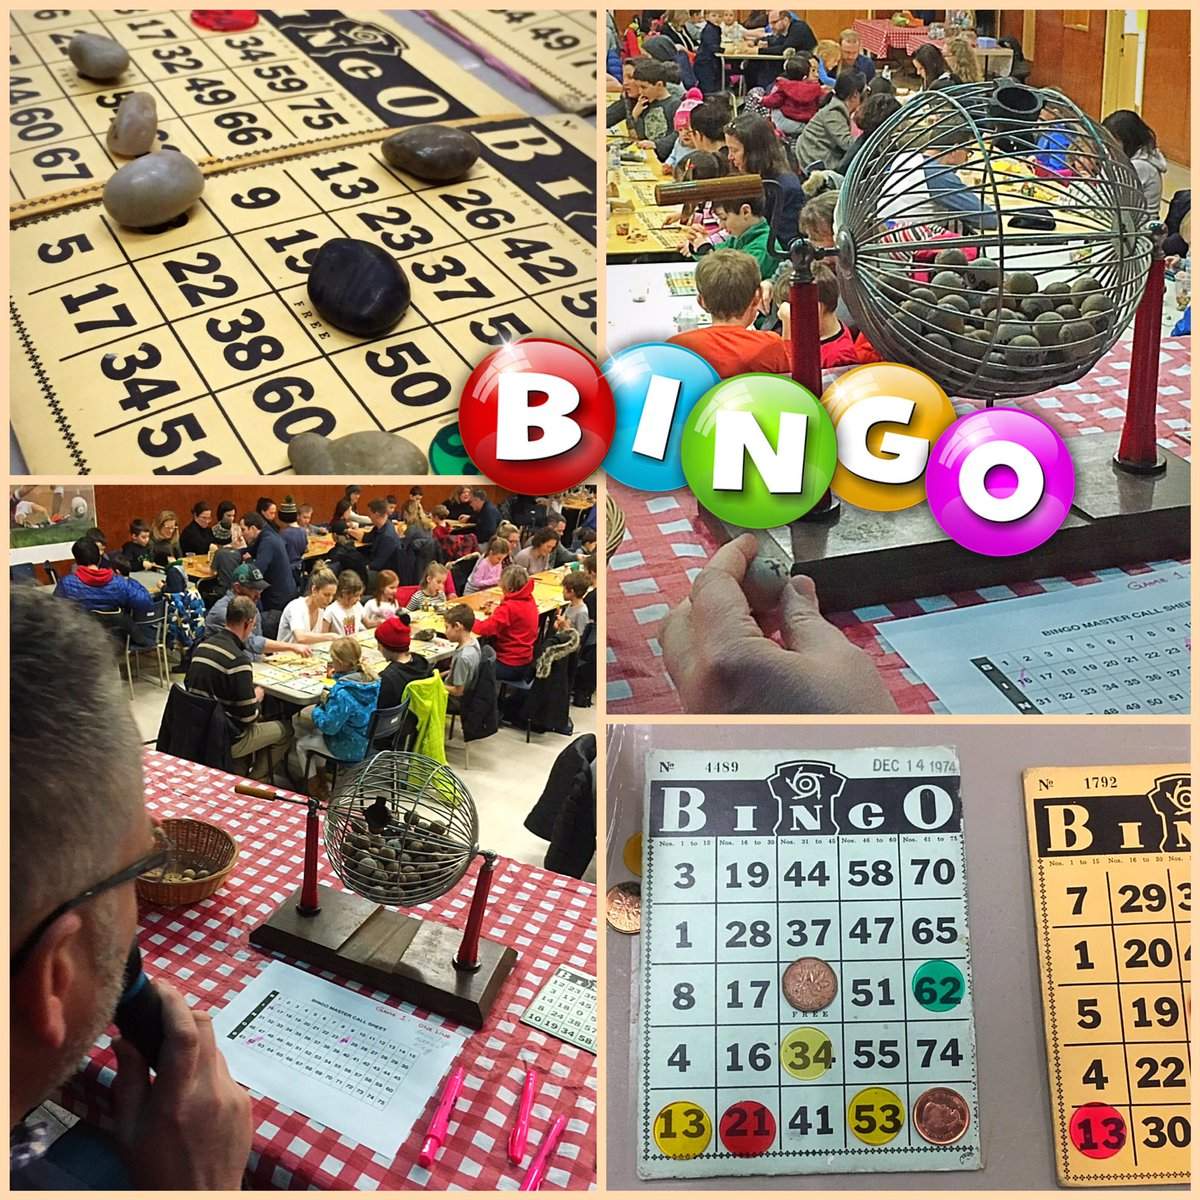 What an awesome night at Family BINGO! Thanks to all involved in making this happen, especially Sarah, Sean & Tessa! & to all who helped put it away! #BINGOcardsfrom1974 amazing!